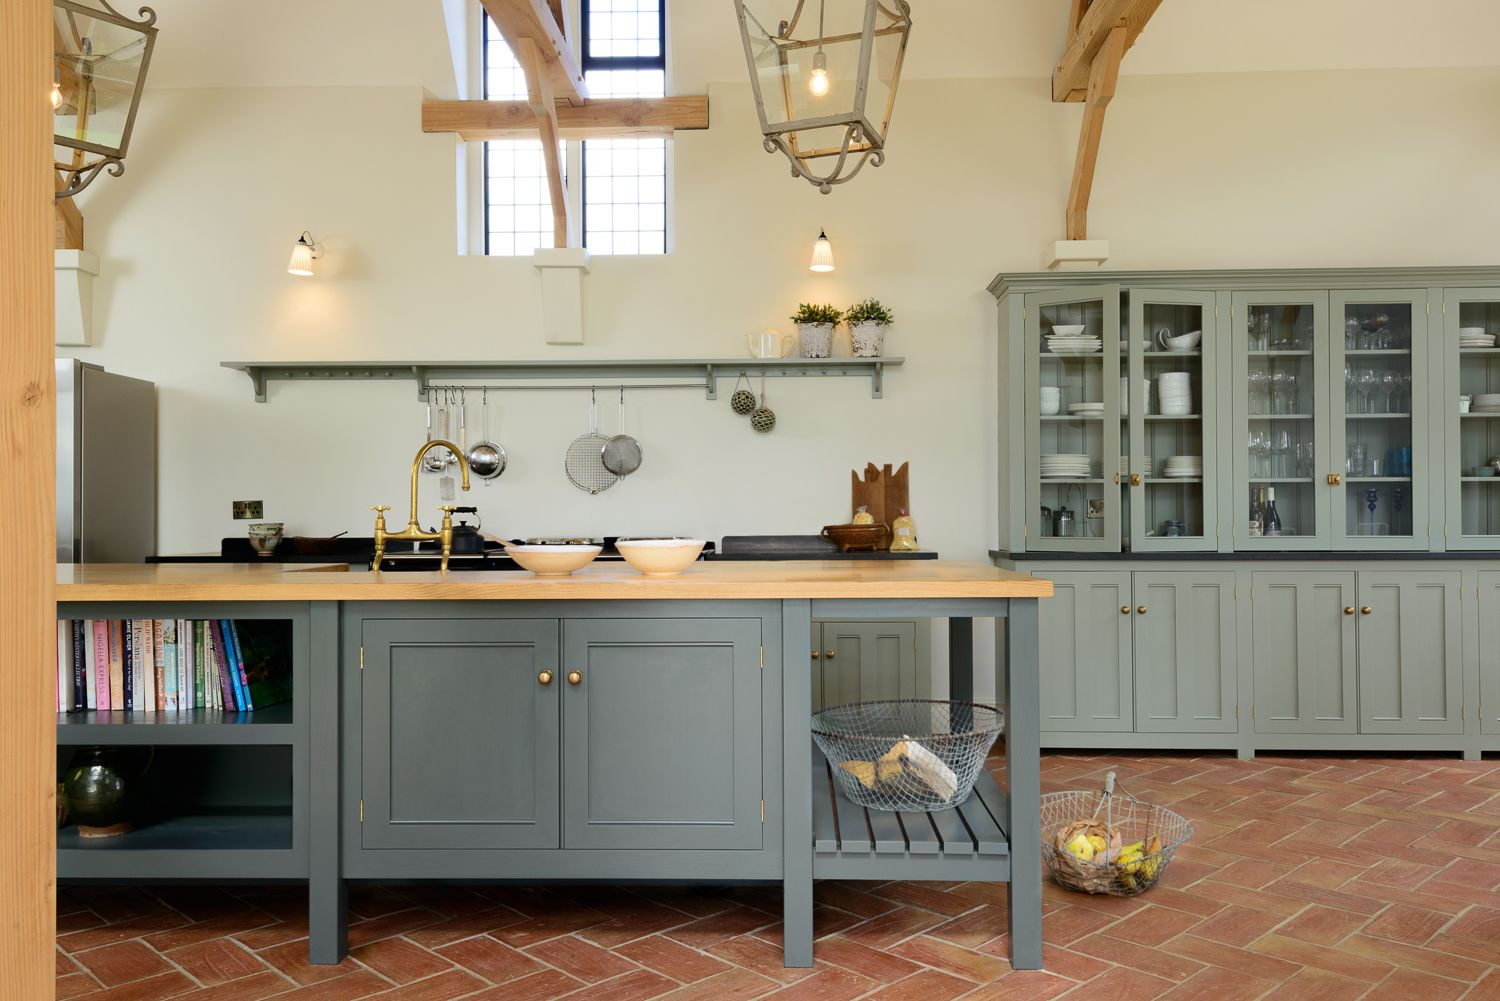 unfitted kitchen design. DeVOL Bespoke Classic English Kitchens Are Designed And Built In England  Inspired By Georgian Country Kitchen Designs Fully A Beautiful With A Mix Of Honed Black